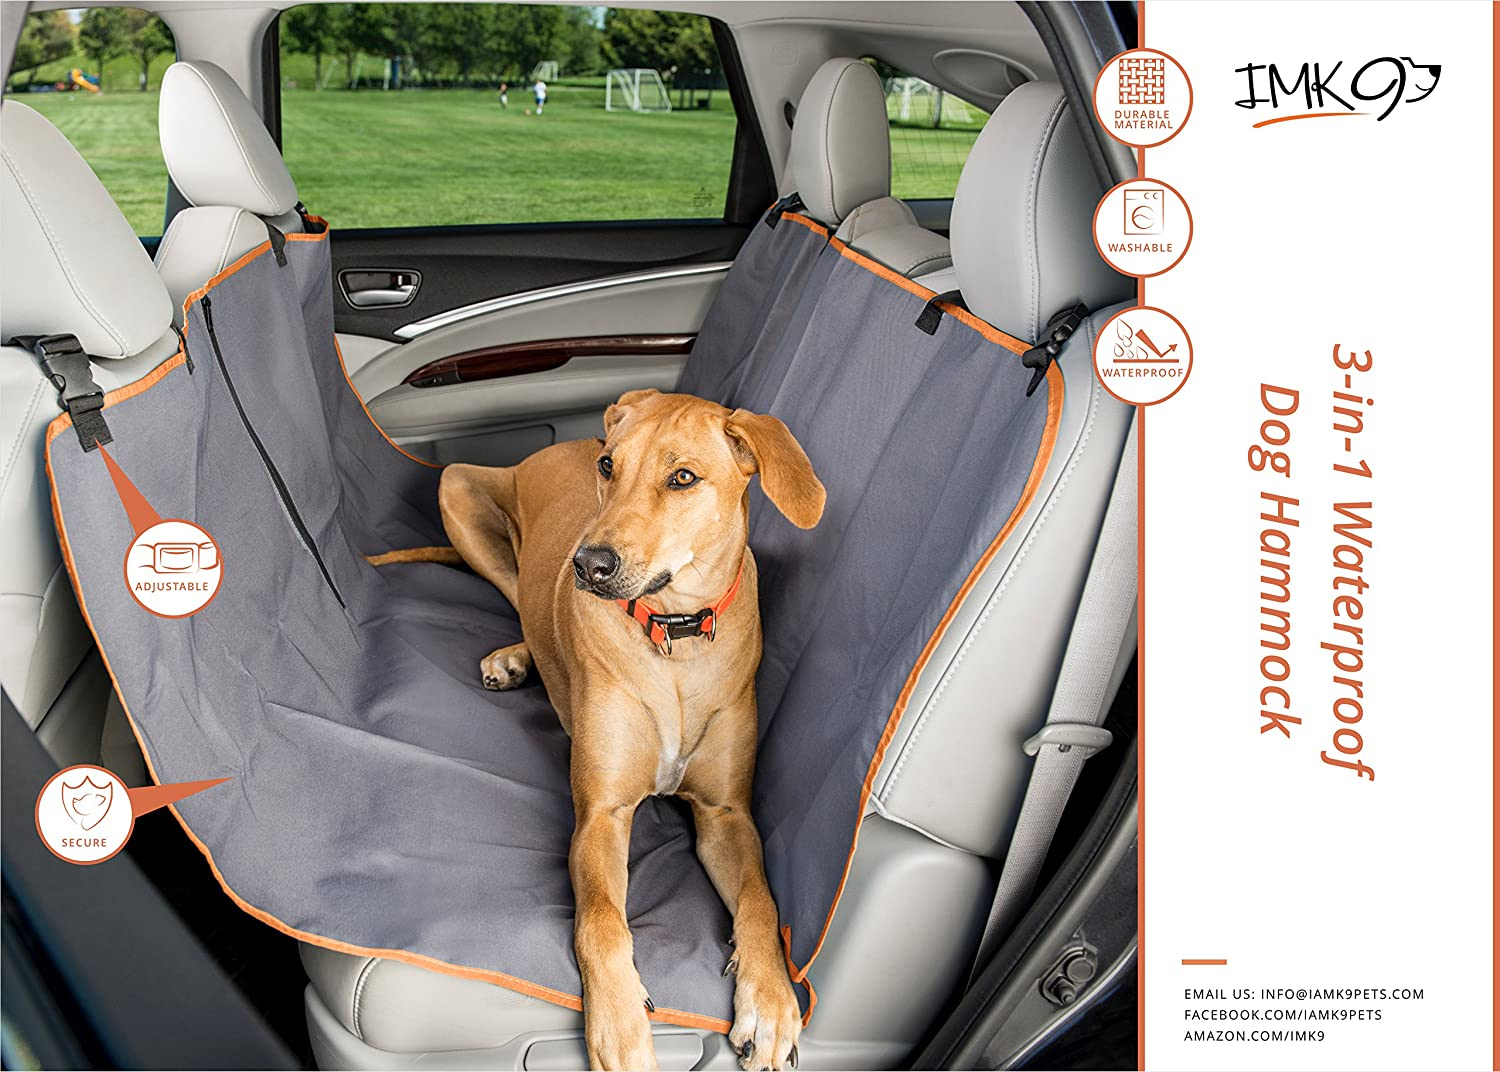 Medium image of amazon     limited time   dog car hammock   back seat cover for dogs   waterproof   use mat on car seat or bench seats   large size protects most cars